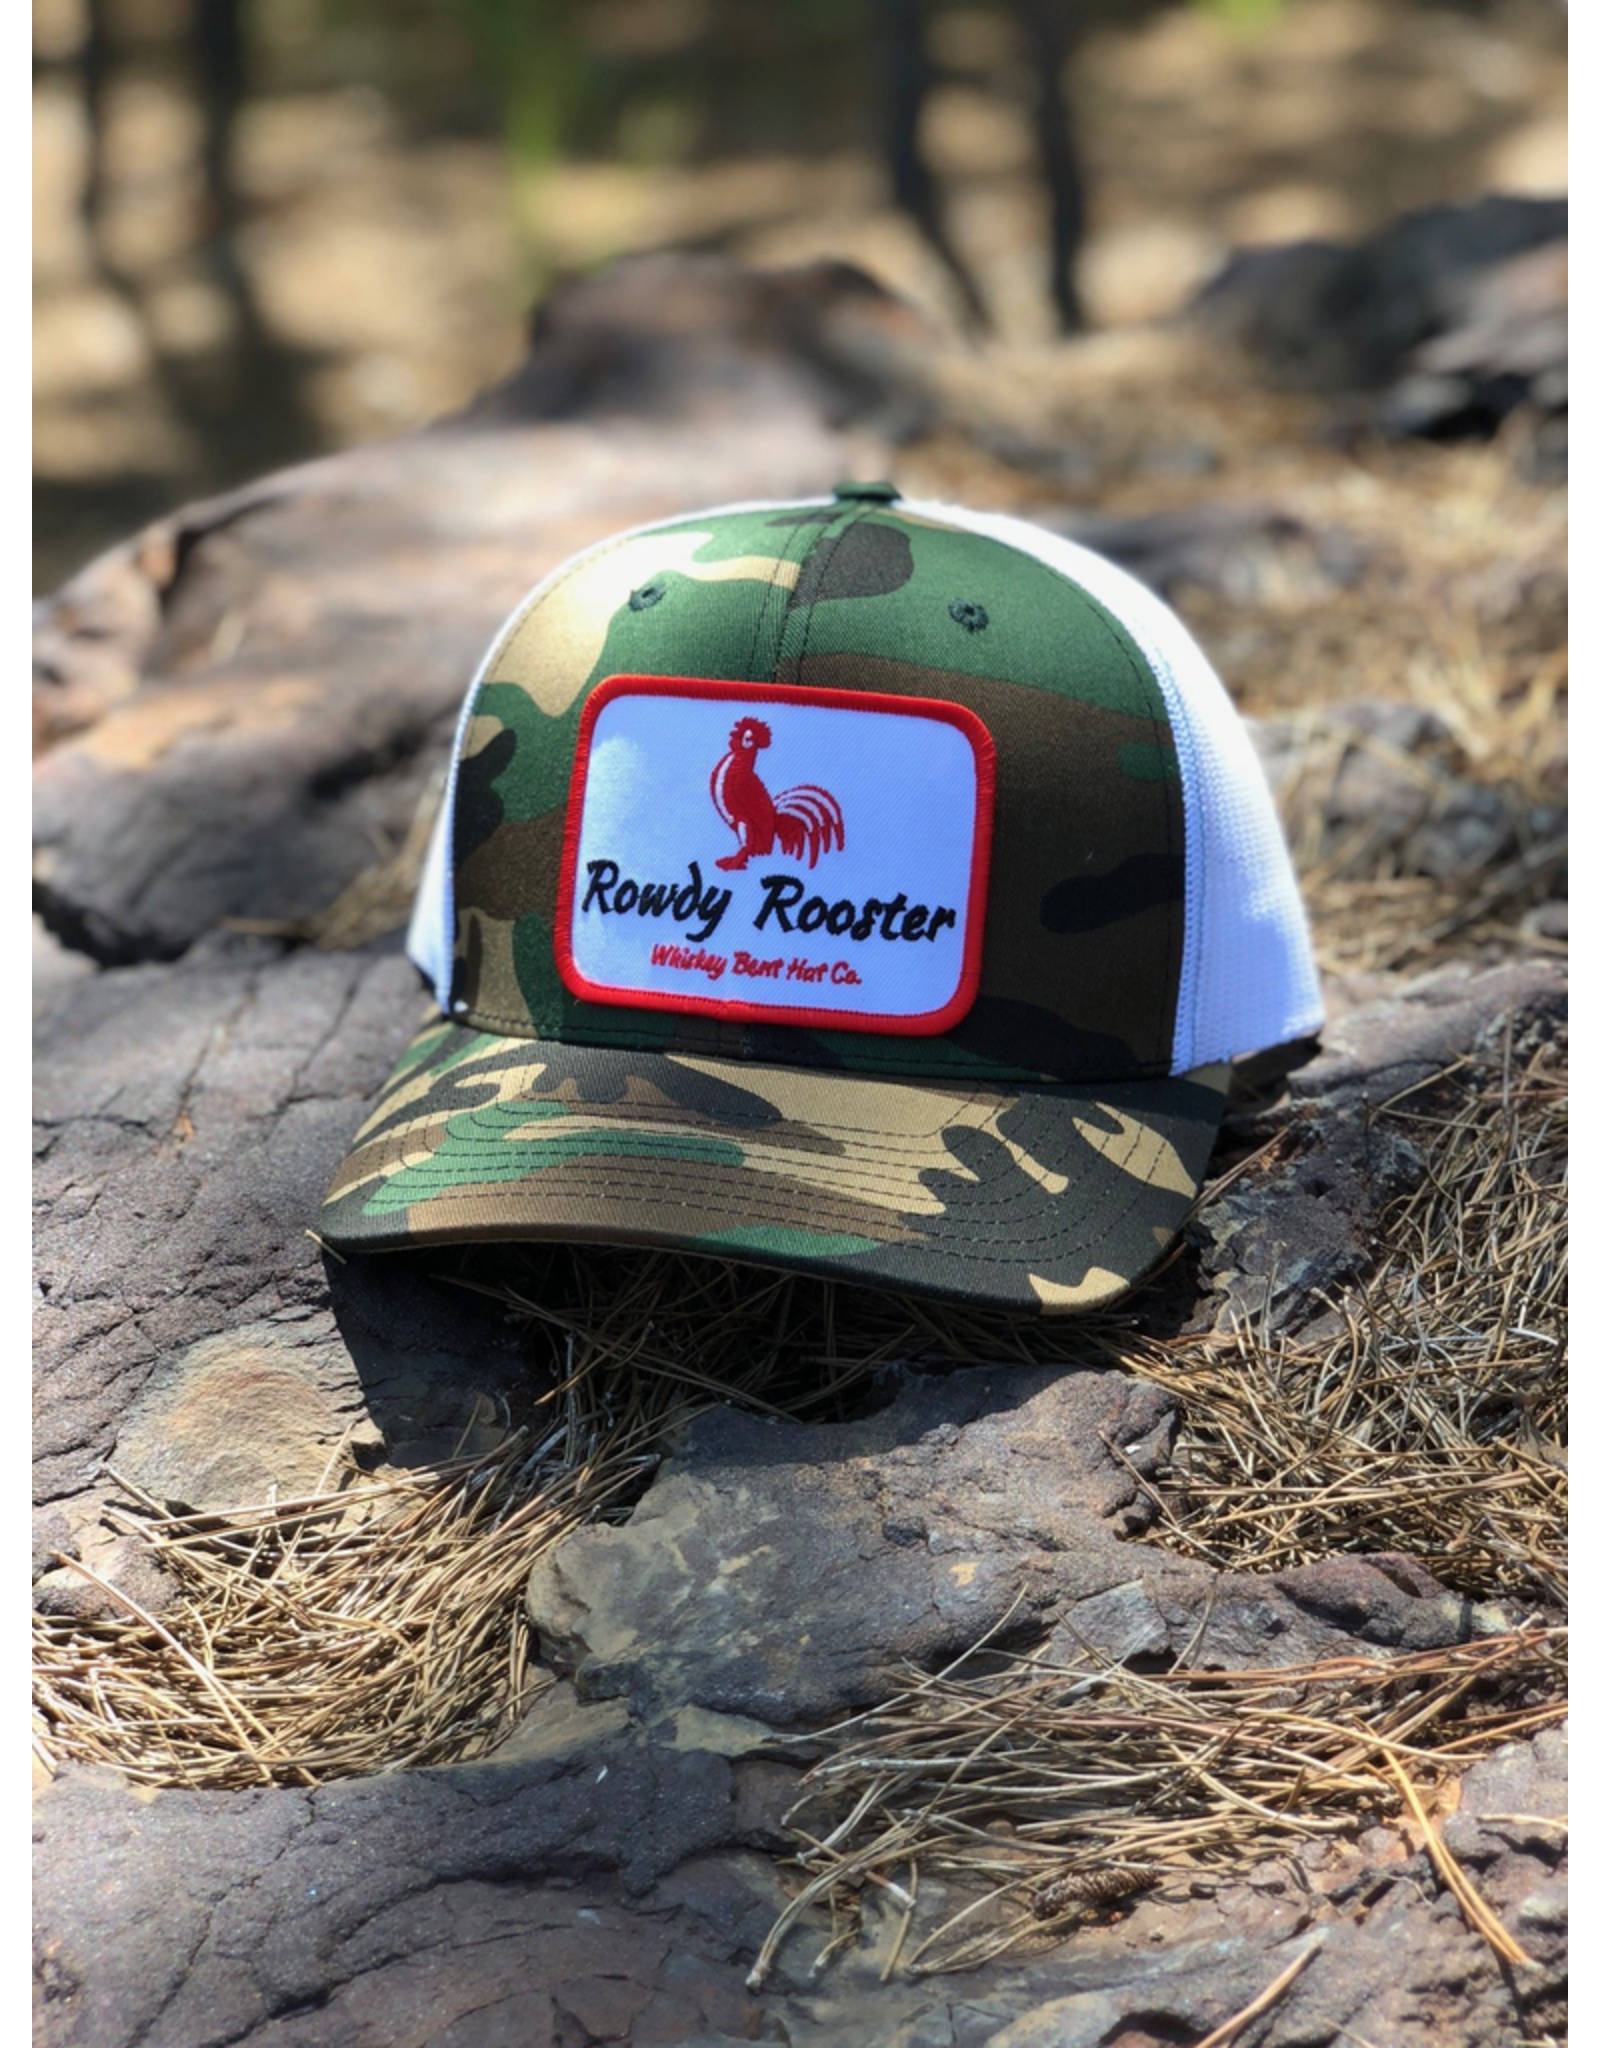 Hats WHISKEY BENT HAT CO. Rowdy Rooster